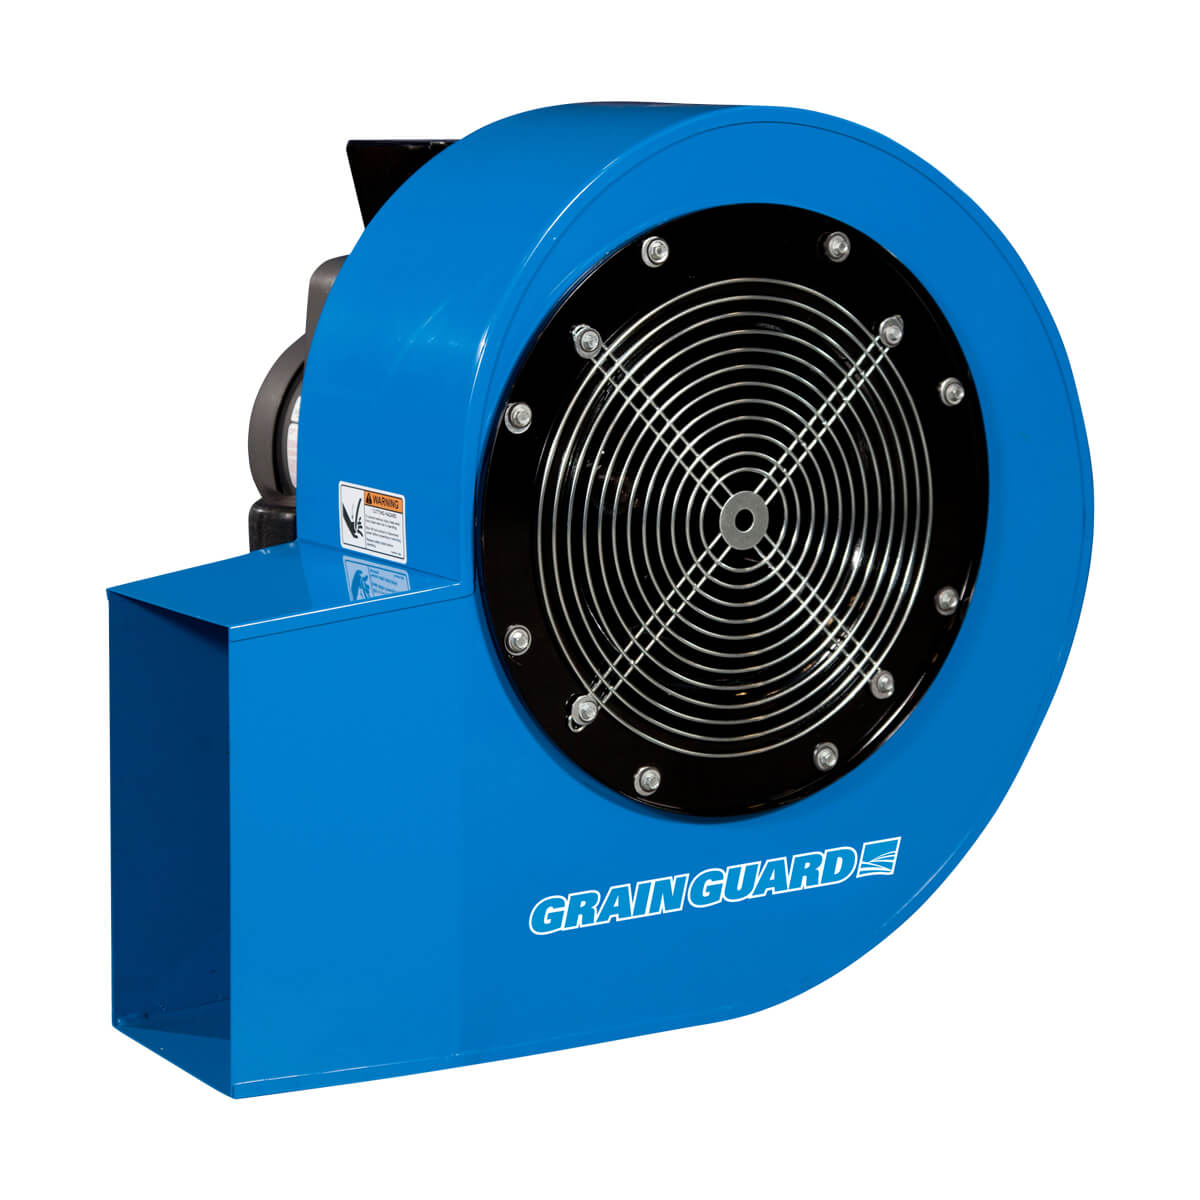 Centrifugal Fans (230V and 480V - 3 Phase) - 10 hp - 480V - 3 Phase